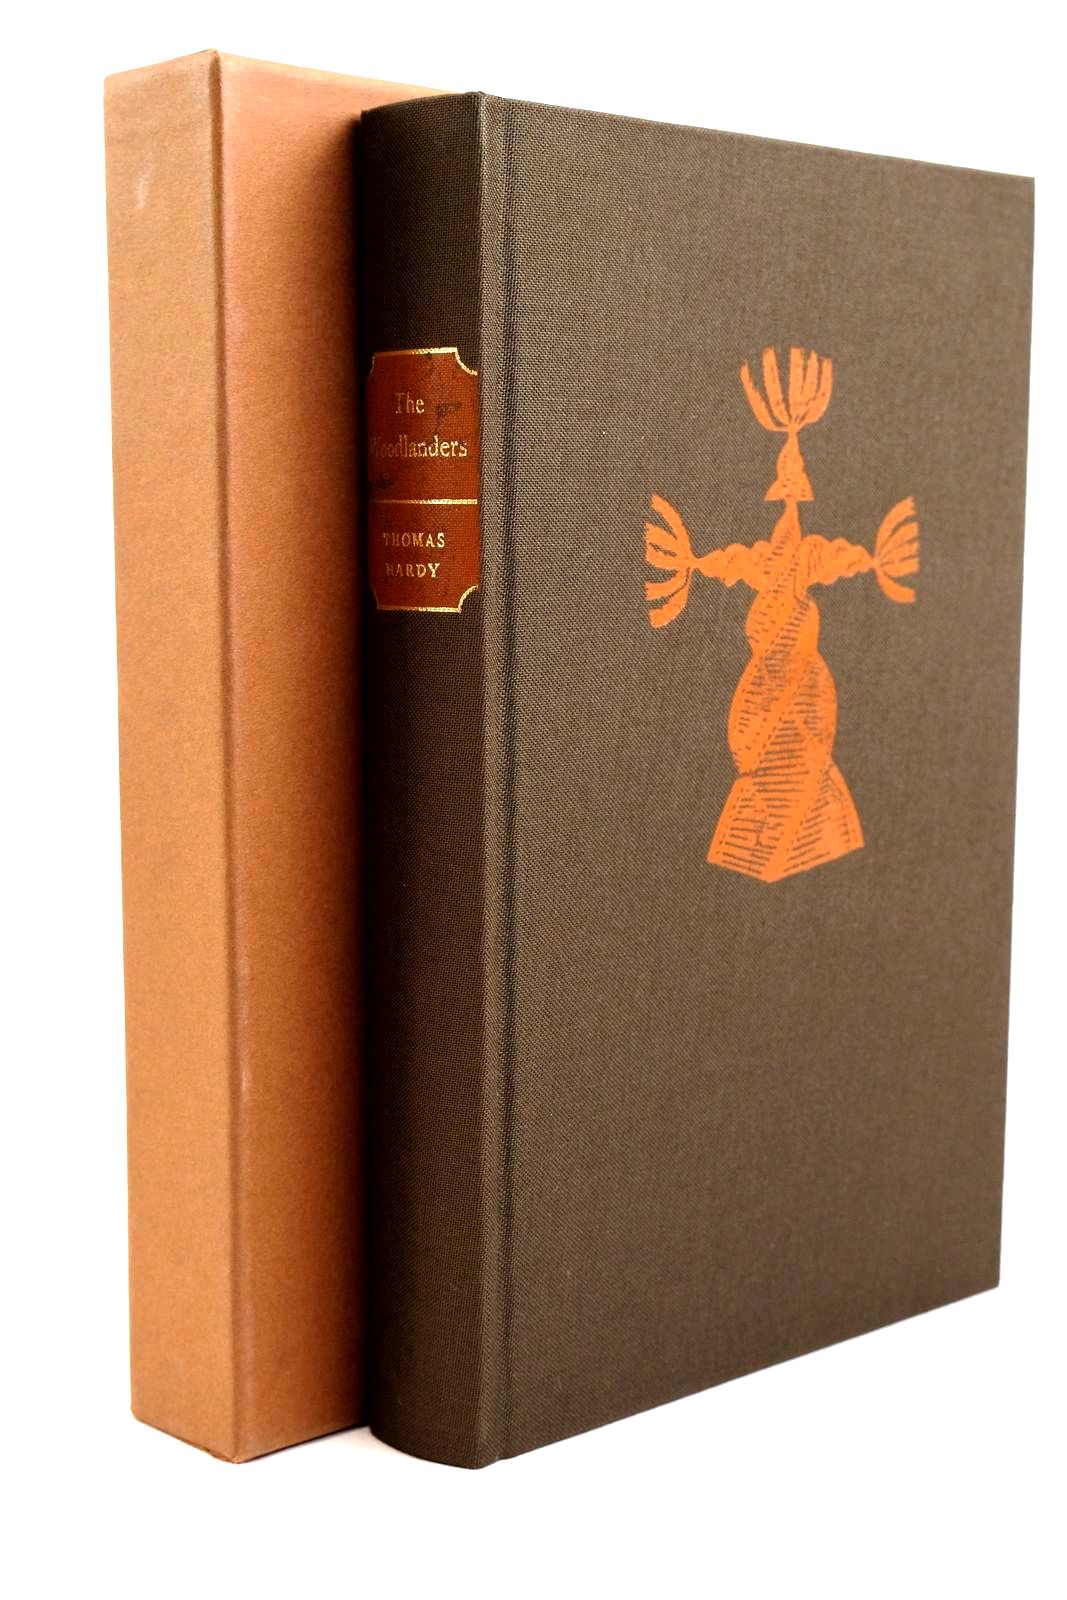 Photo of THE WOODLANDERS written by Hardy, Thomas illustrated by Reddick, Peter published by Folio Society (STOCK CODE: 1320263)  for sale by Stella & Rose's Books